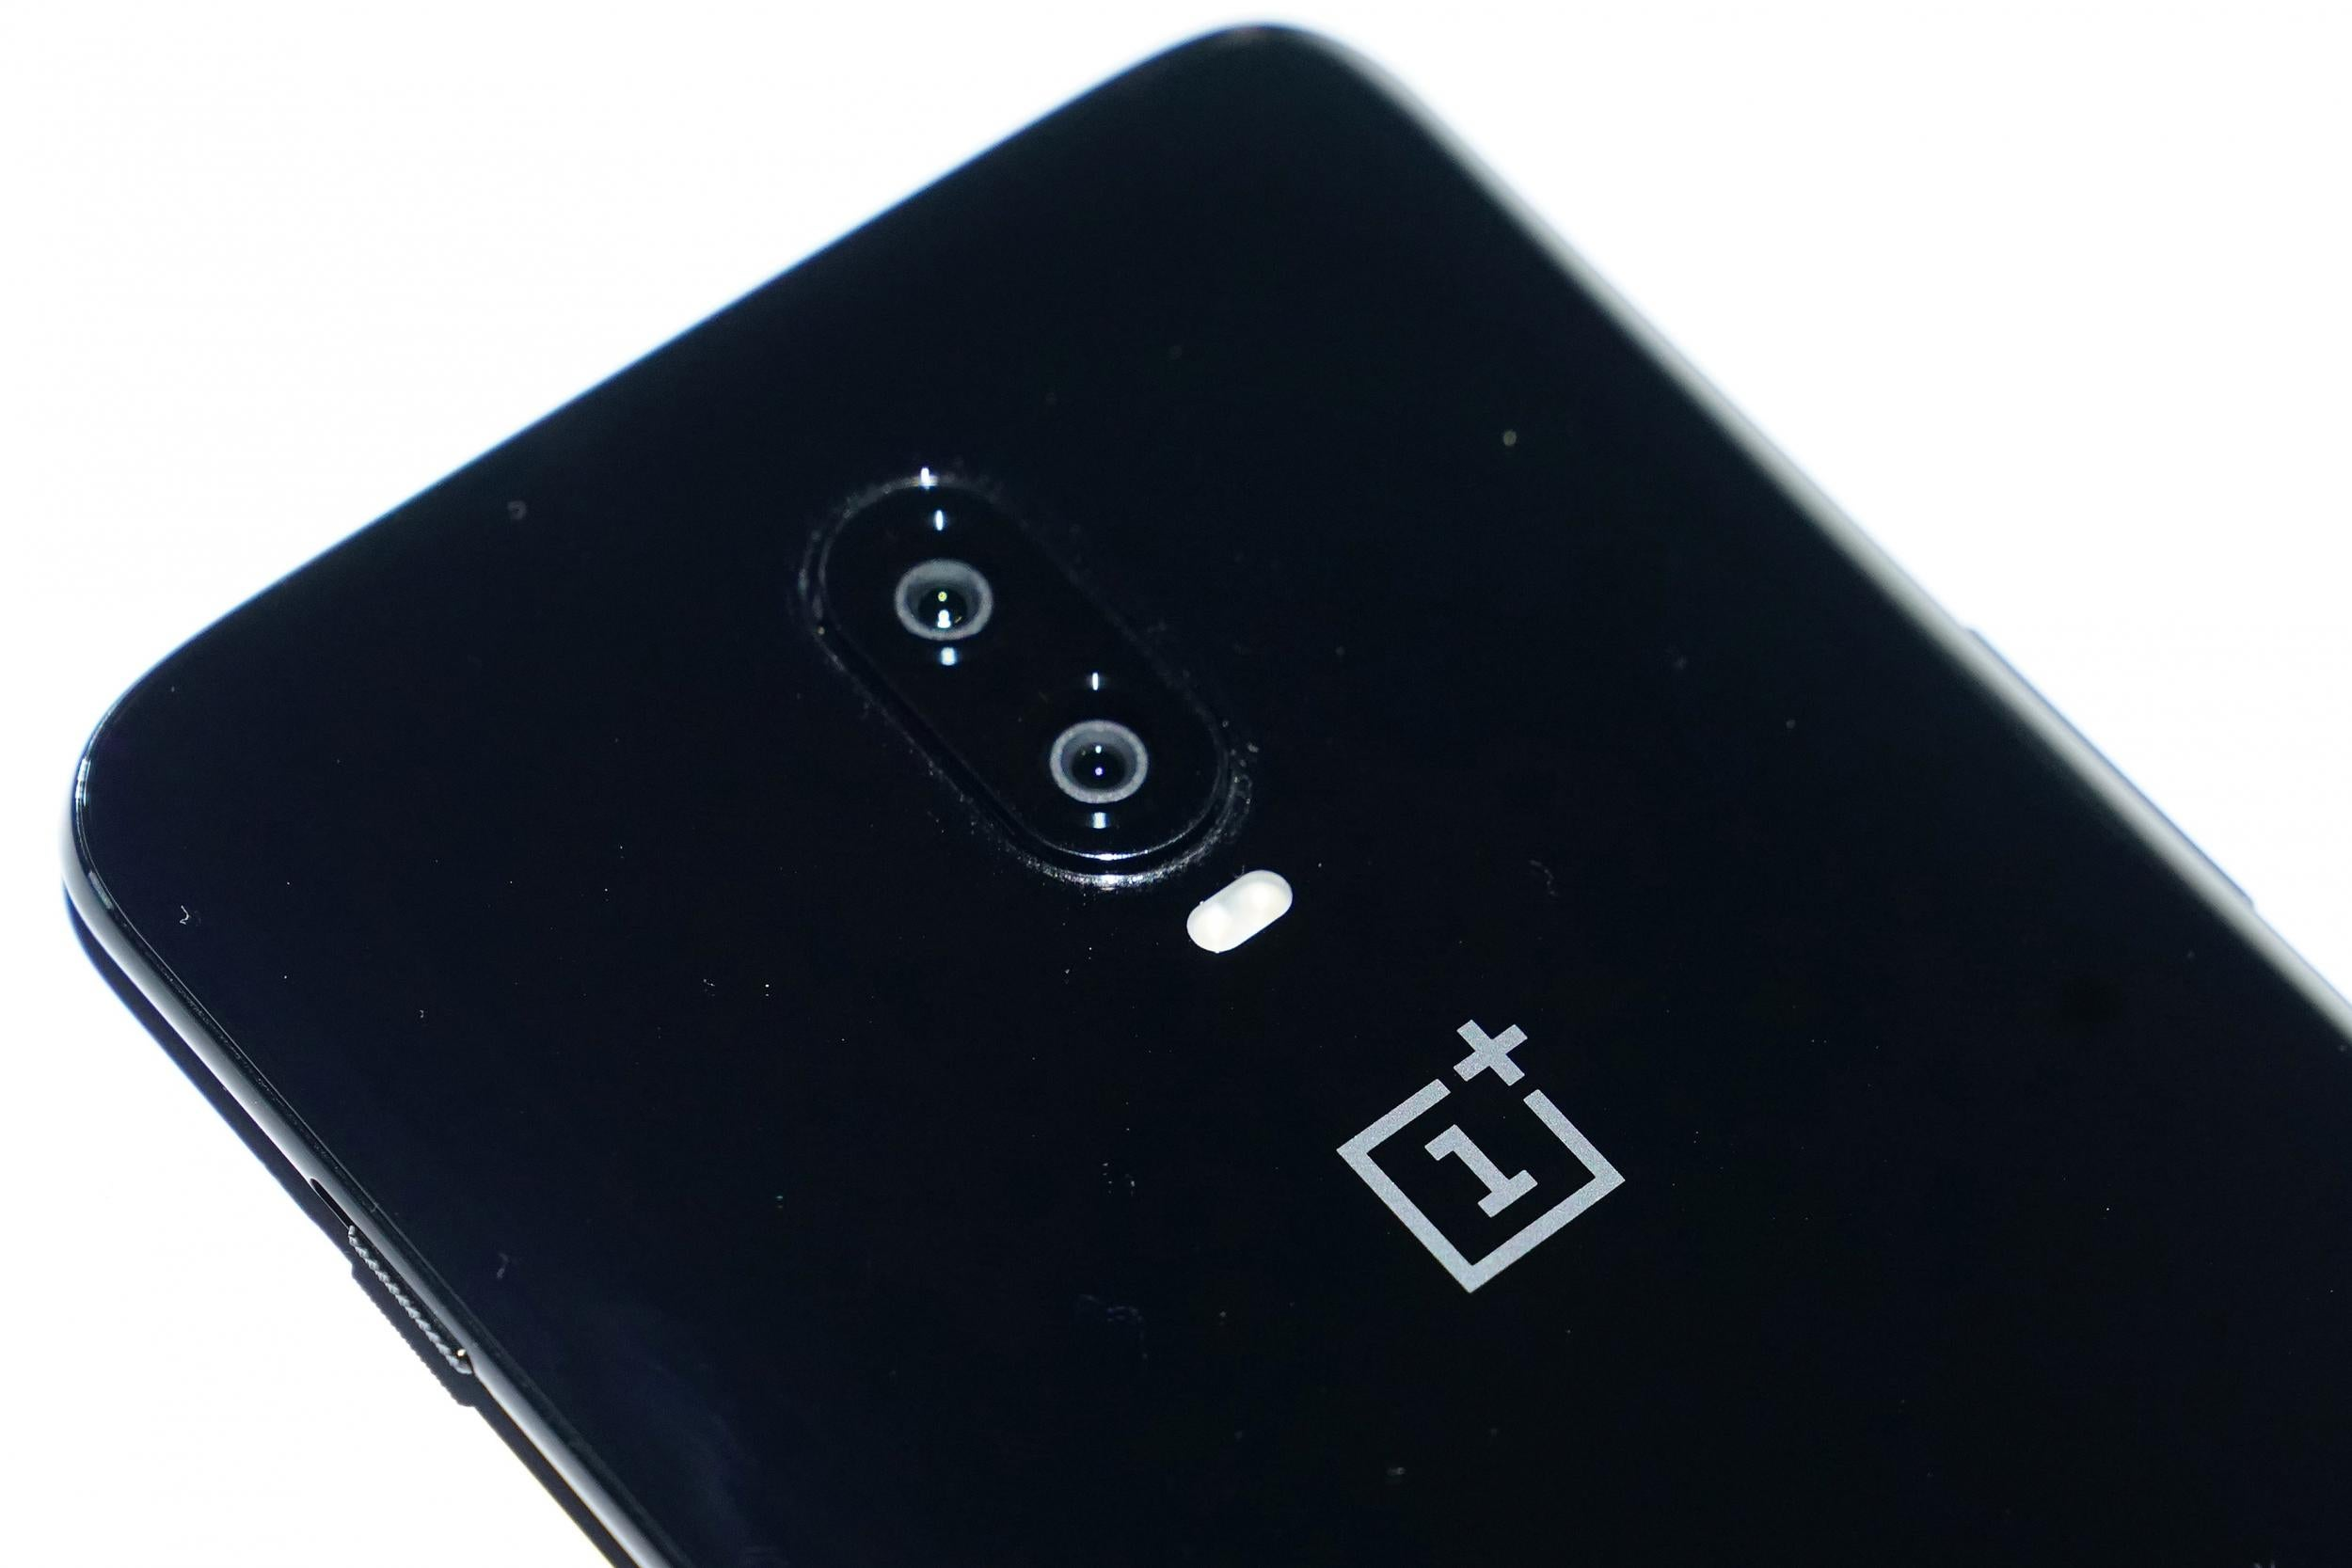 OnePlus 6T review: A deeply appealing device from this plucky